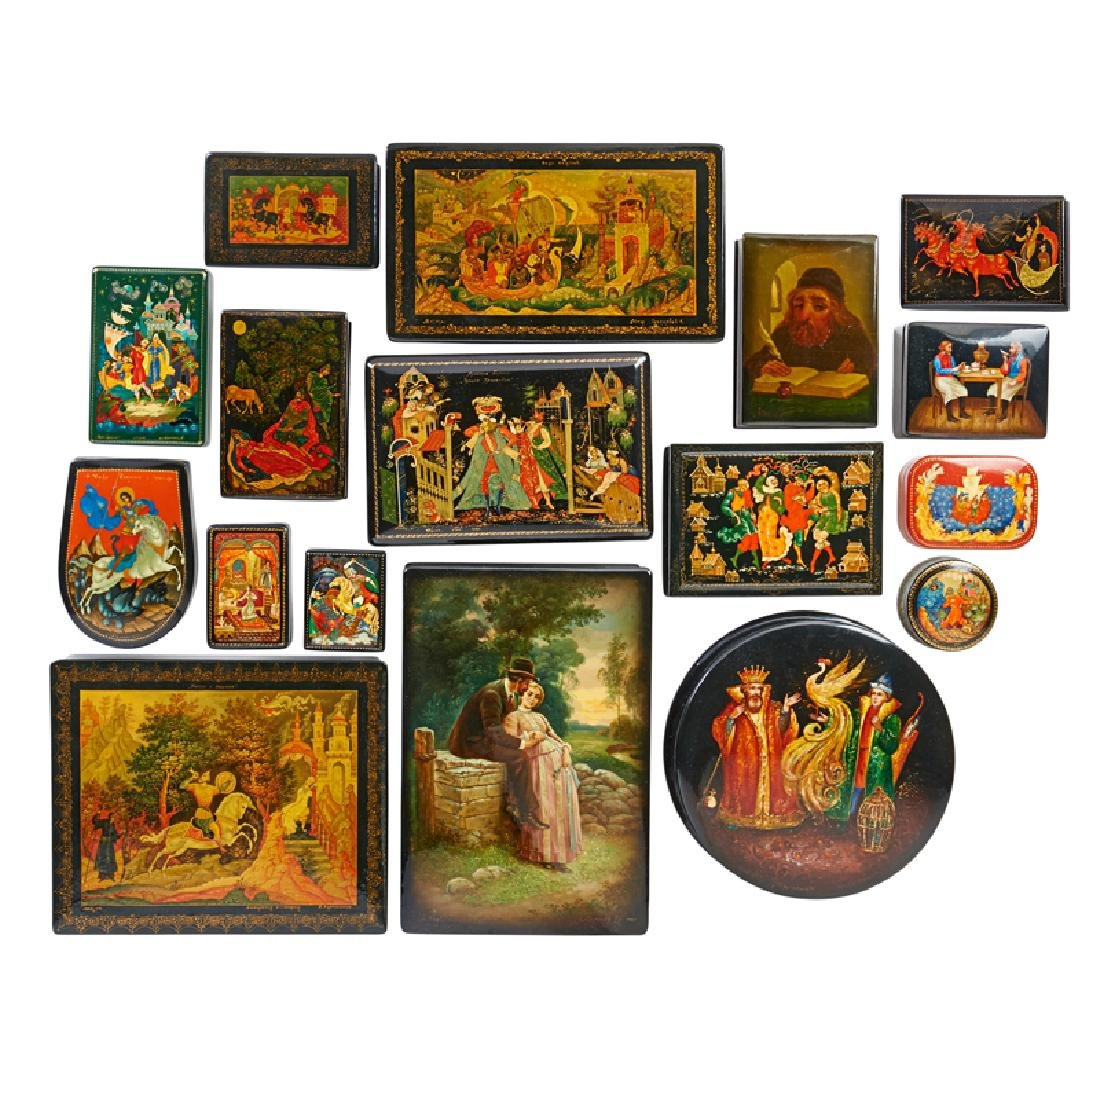 RUSSIAN LACQUER BOXES